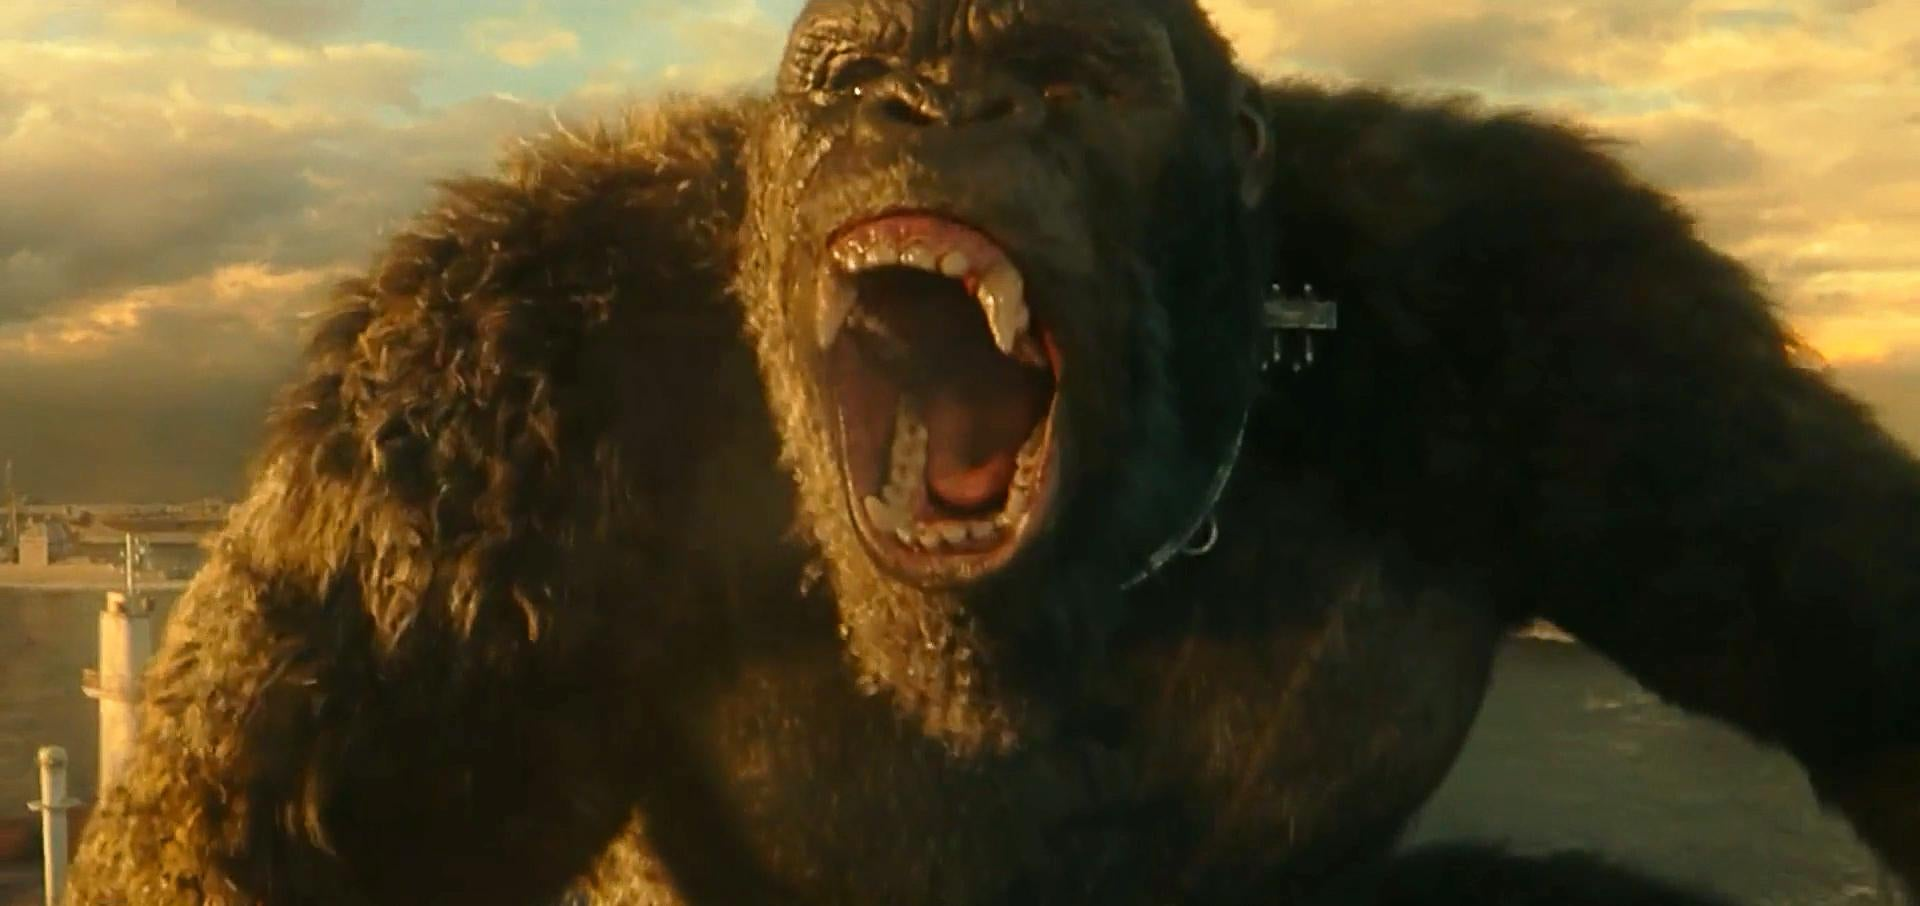 godzilla-vs-kong-movie-review-2021